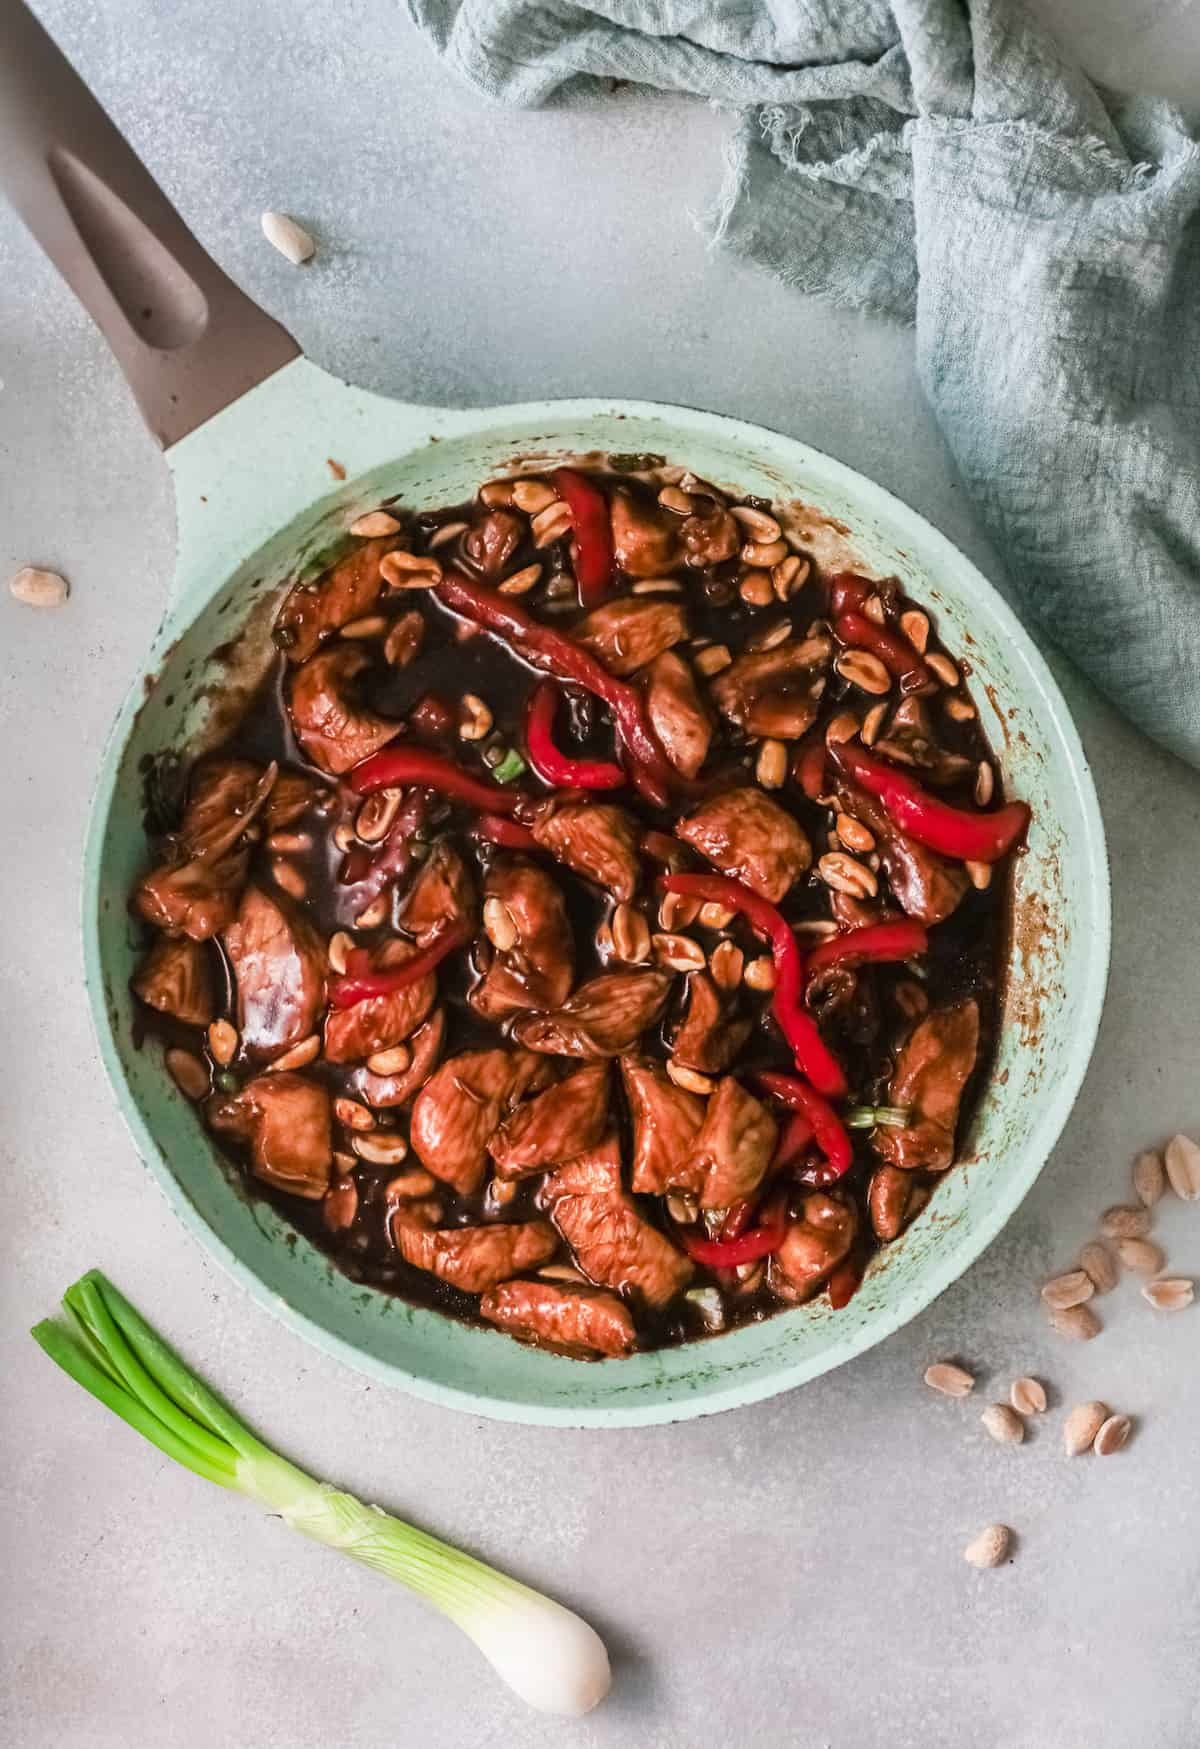 the finished kung pao chicken recipe inside a skillet and ready to serve